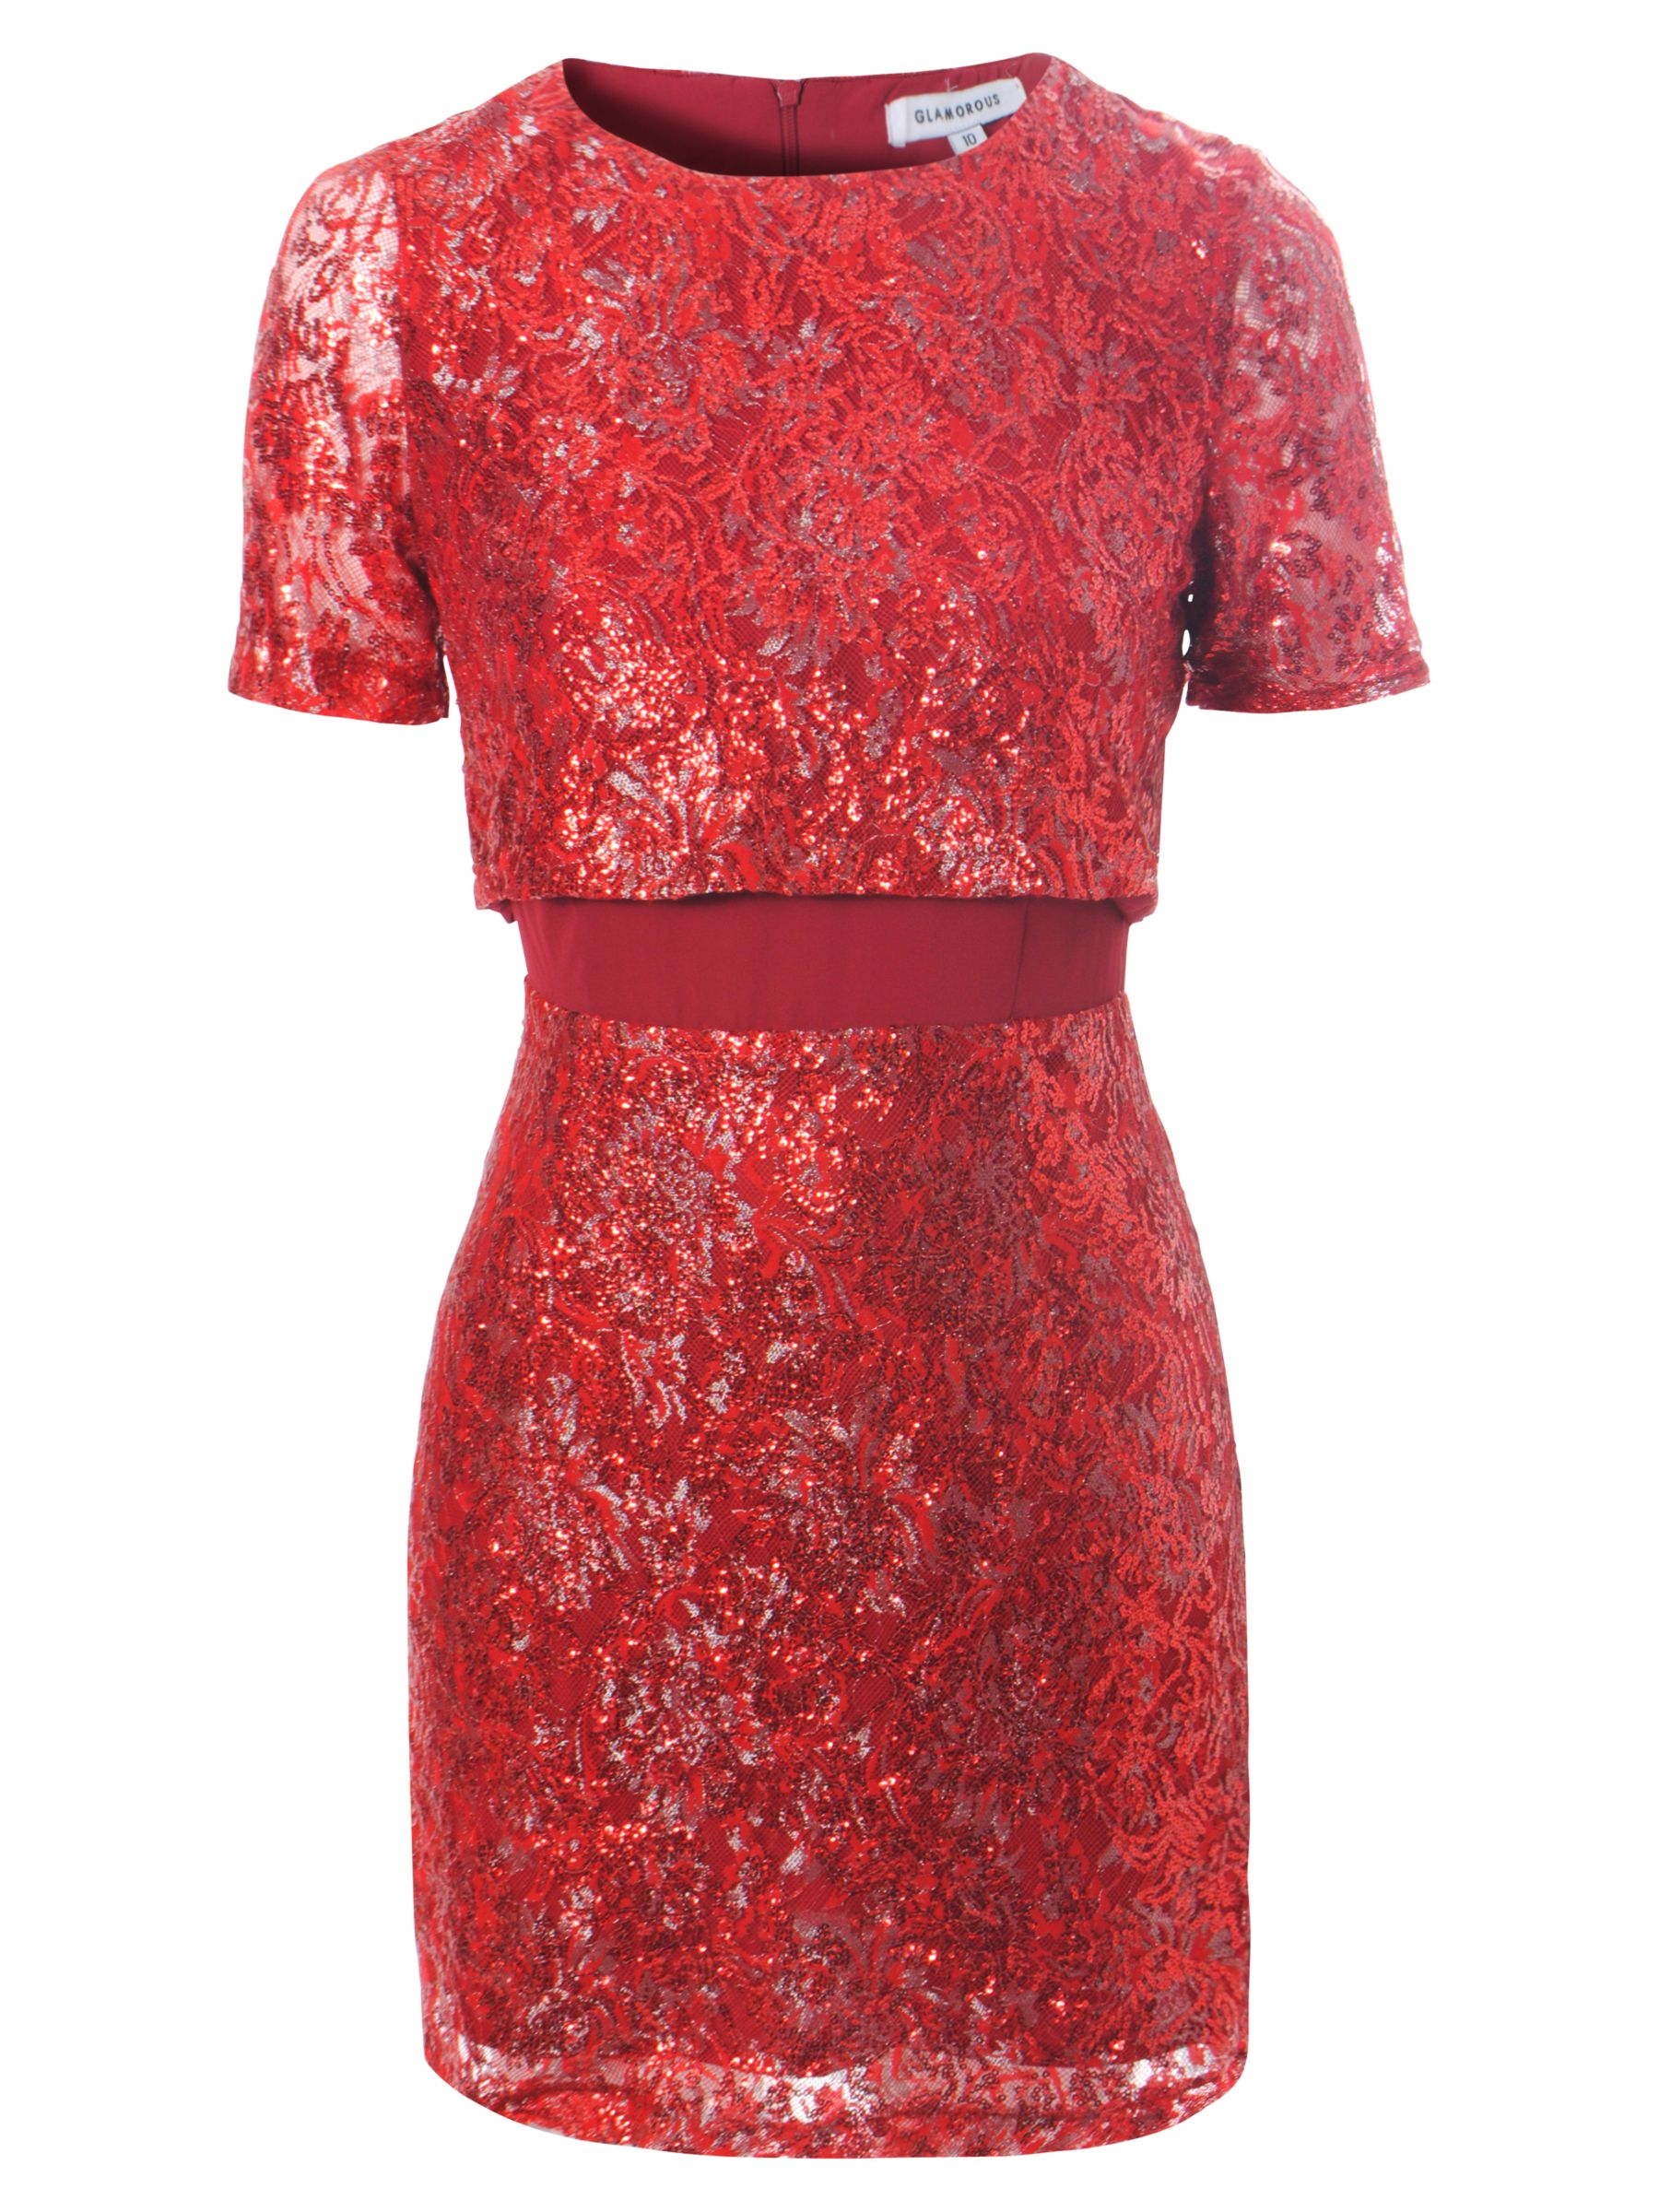 true decadence sequin lace illusion dress red, true, decadence, sequin, lace, illusion, dress, red, true decadence, 12|16|14|18, clearance, womenswear offers, womens dresses offers, new years party offers, women, inactive womenswear, new reductions, womens dresses, special offers, 1783262